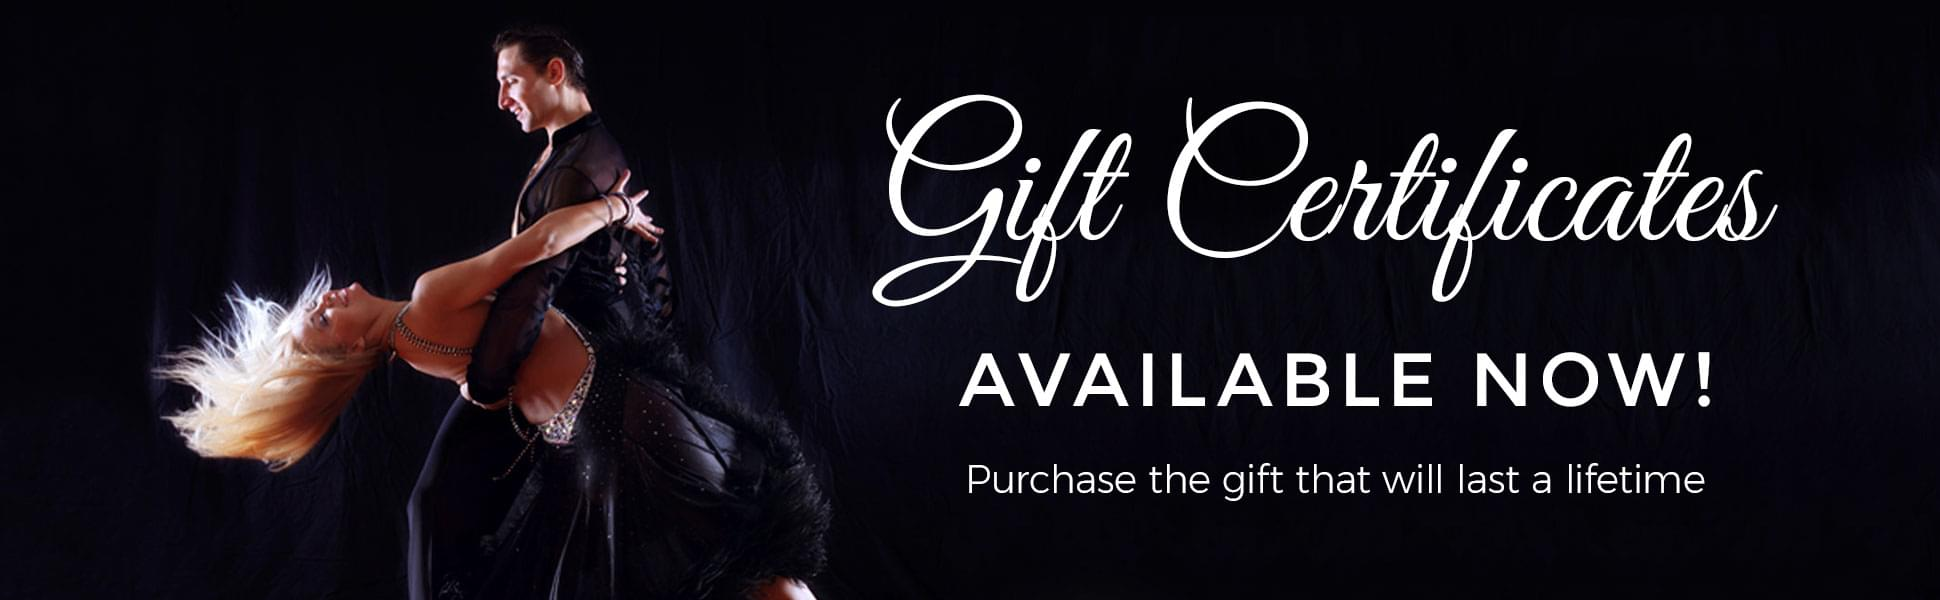 Commack Gift Certificates for Beginners and Couples